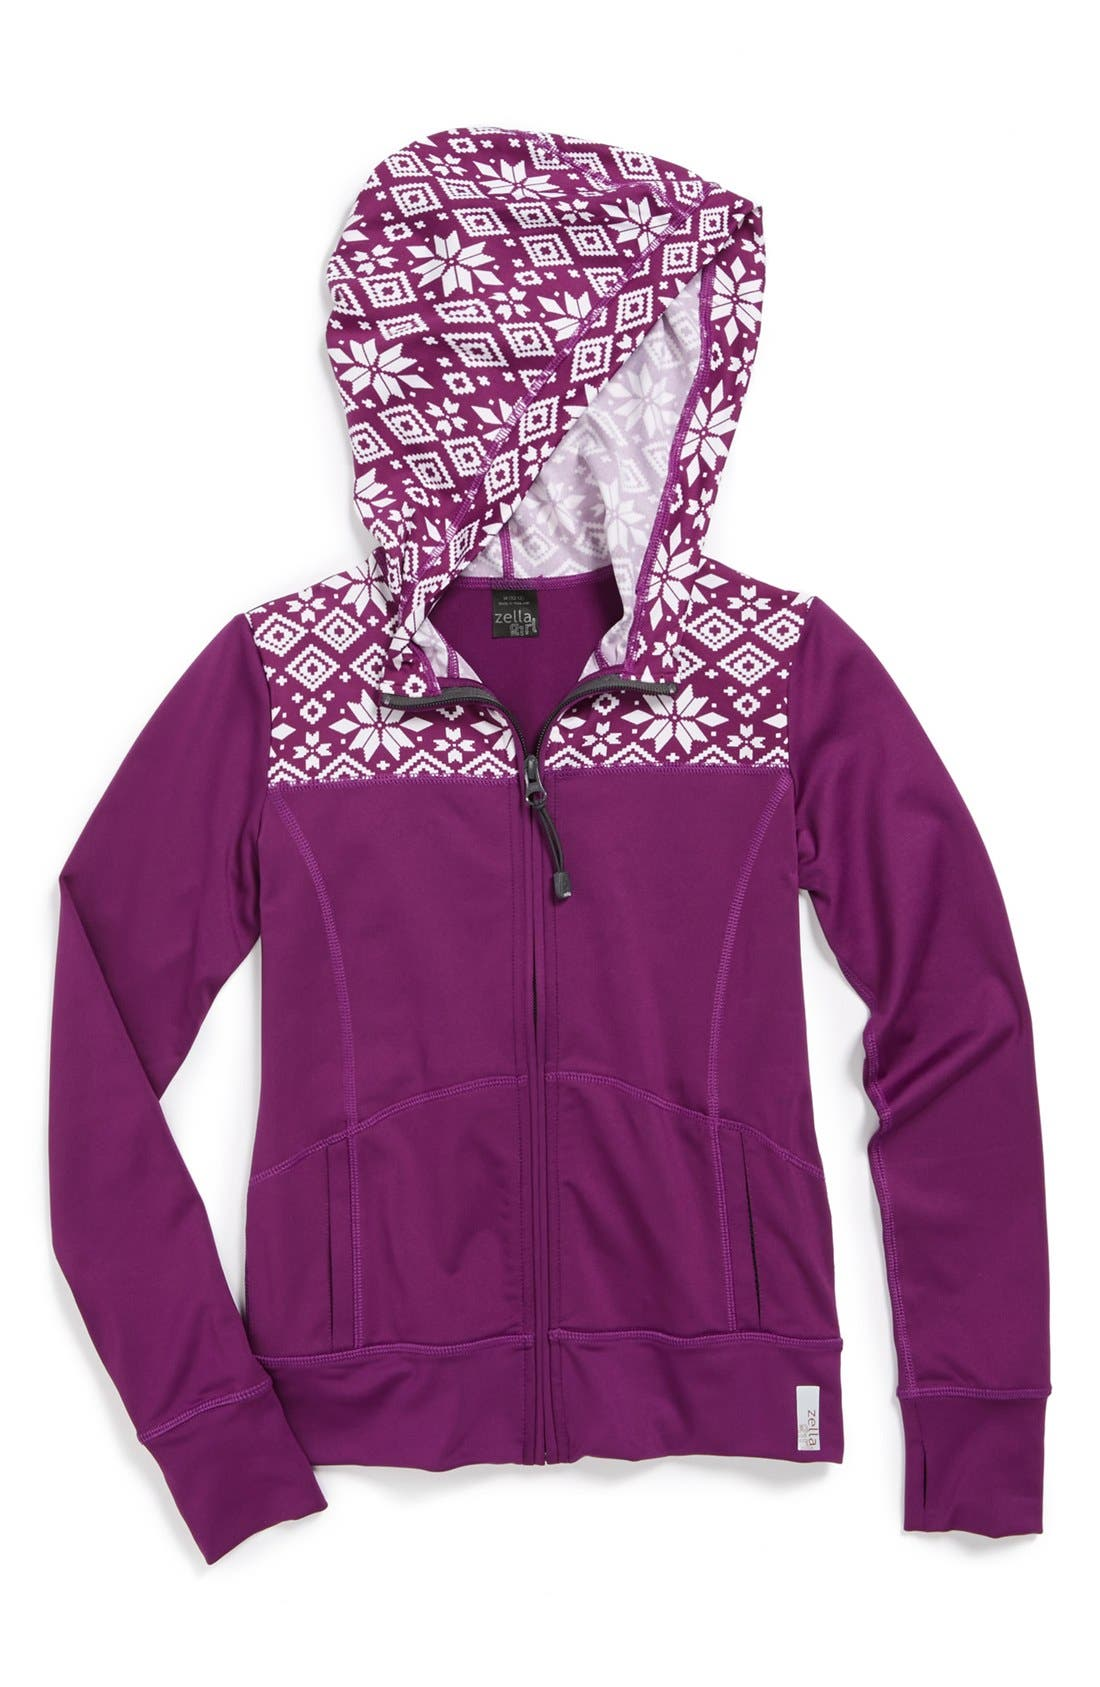 Main Image - Zella 'Routine' Print Hoodie (Little Girls & Big Girls)